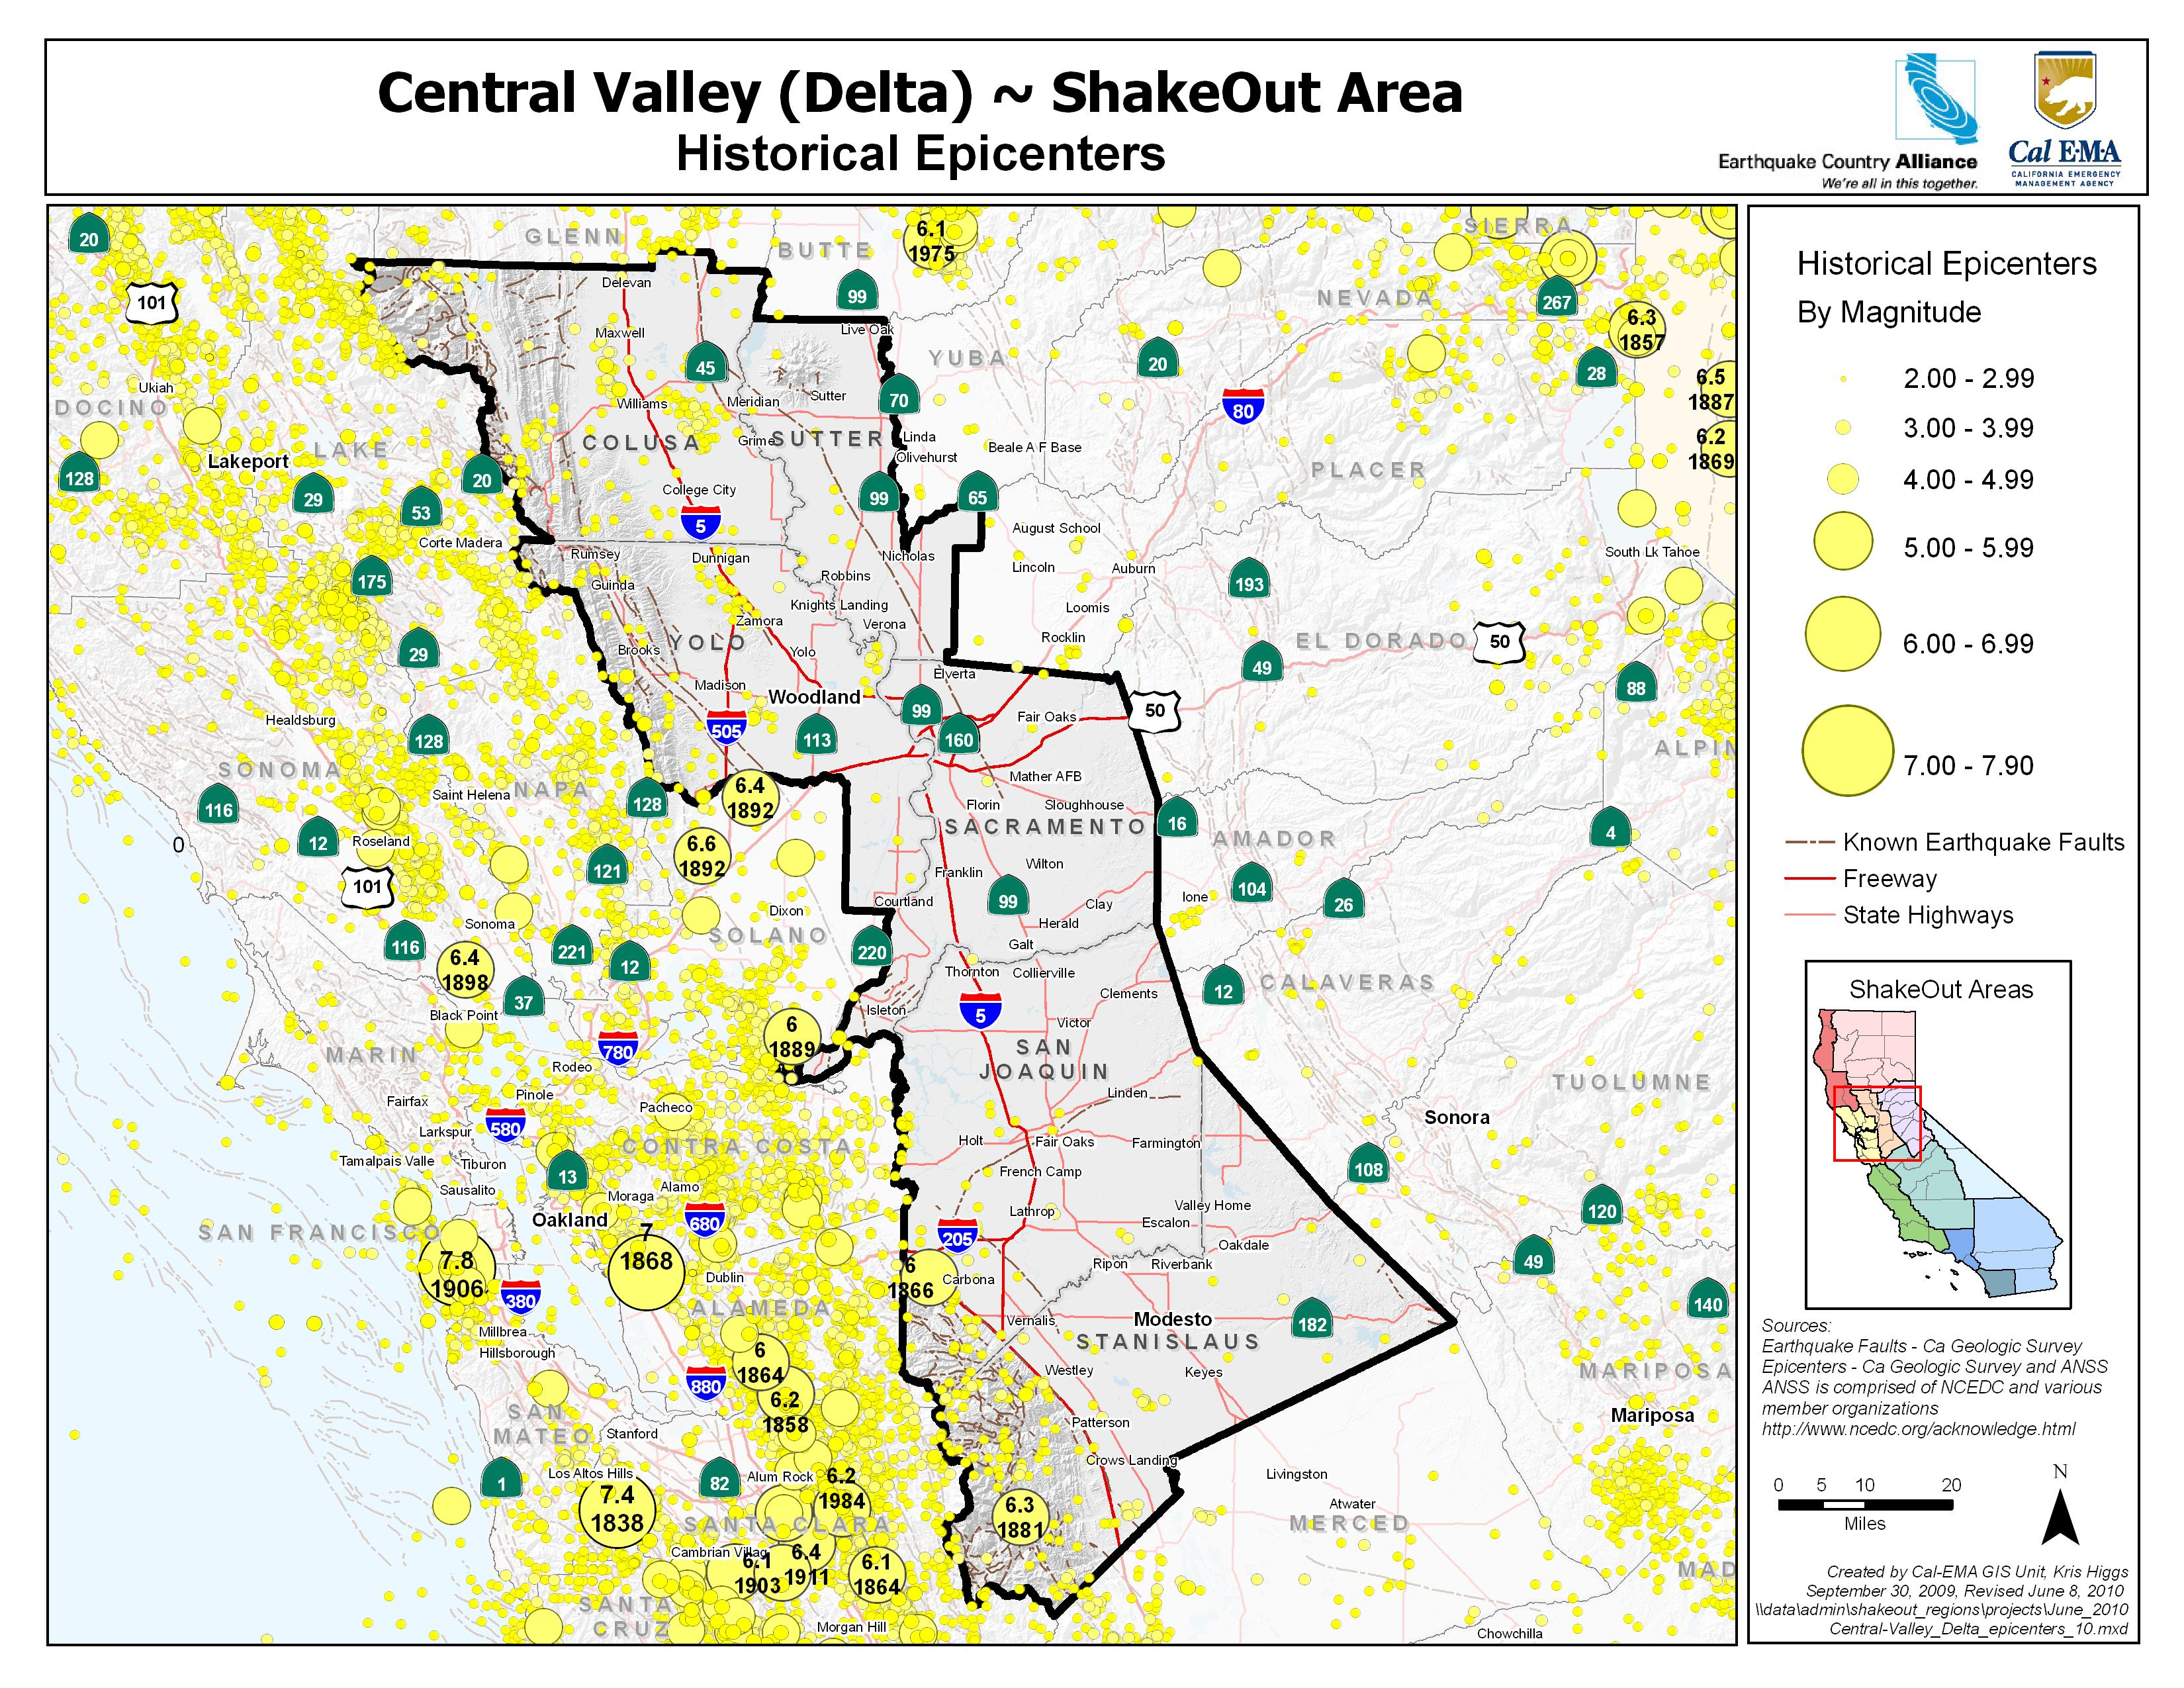 central valley delta area epicenters and faults